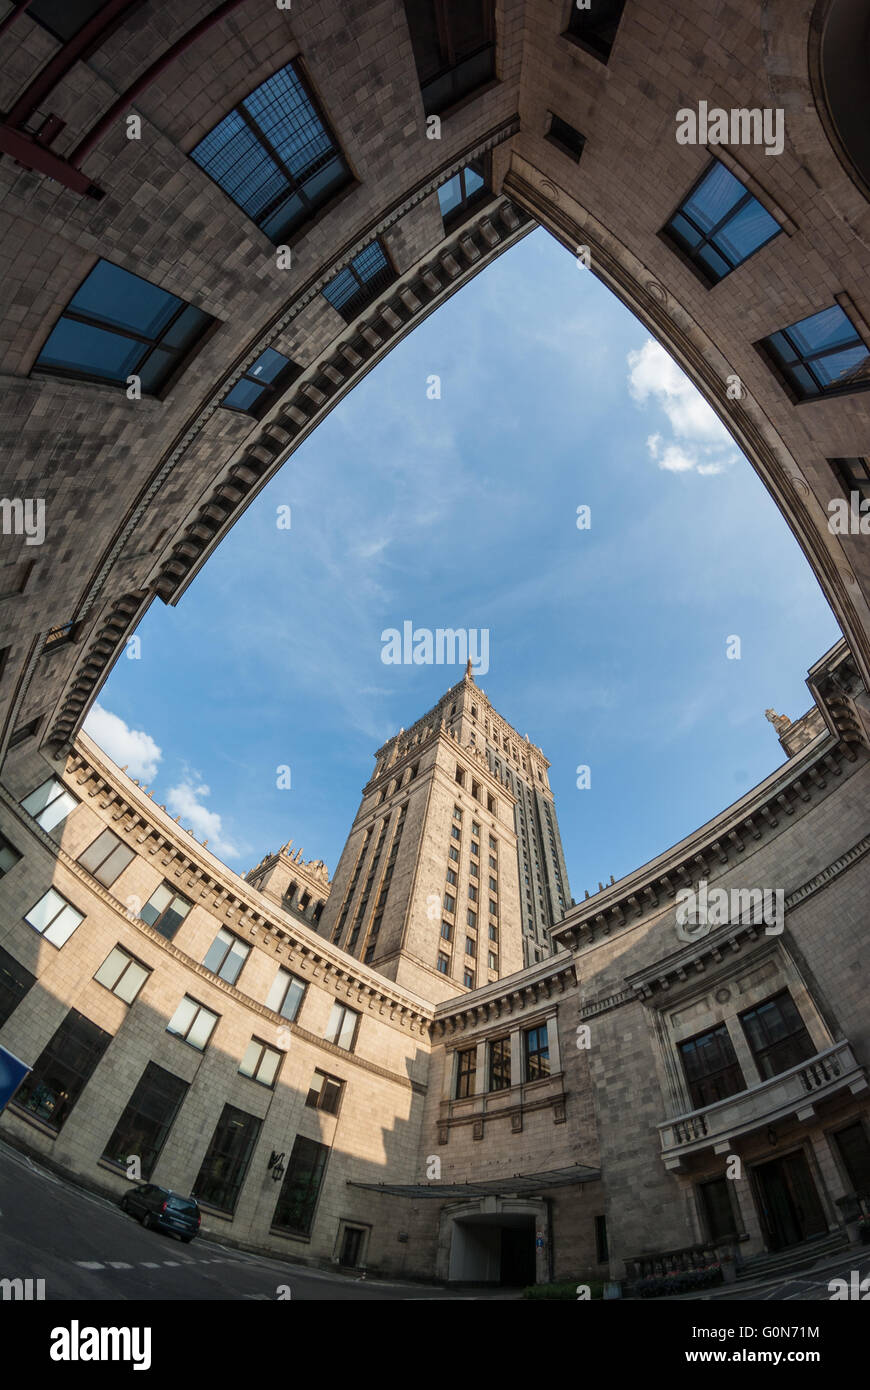 Palac Kultury (Palace of Culture) seen from its inner yard, Warszawa, Poland - Stock Image